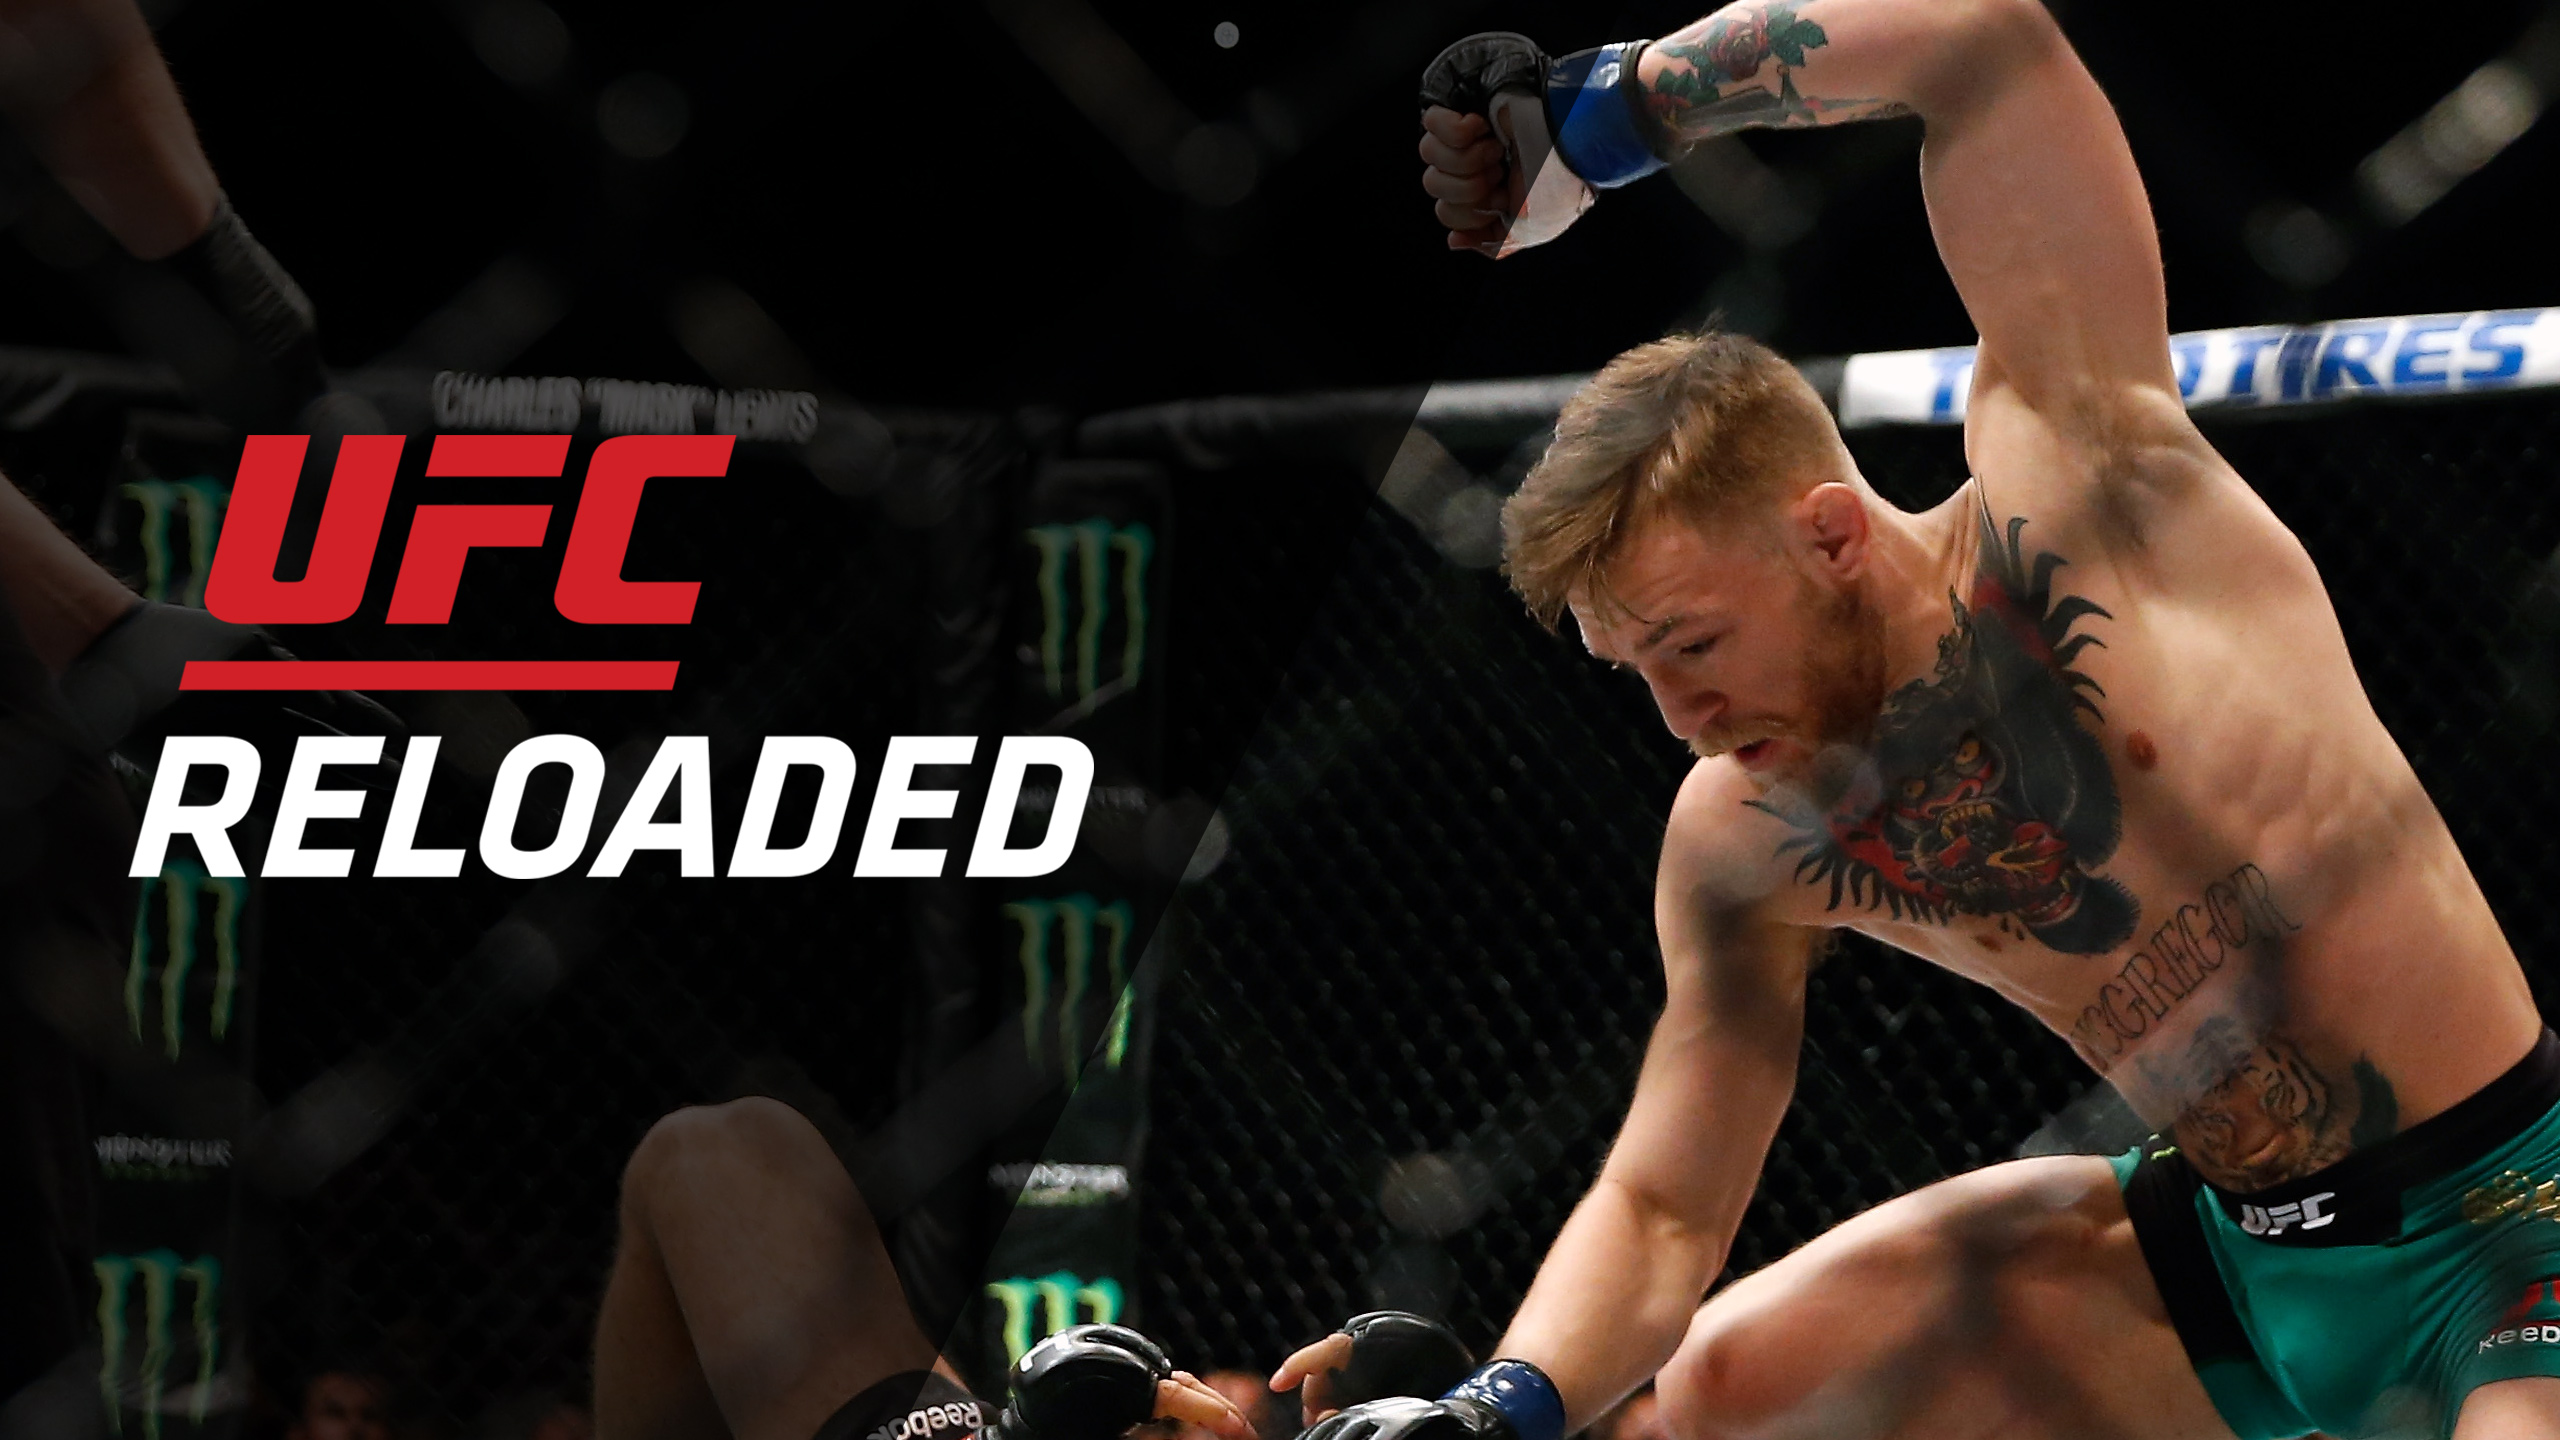 In Spanish - UFC Reloaded: 194: Aldo vs. McGregor